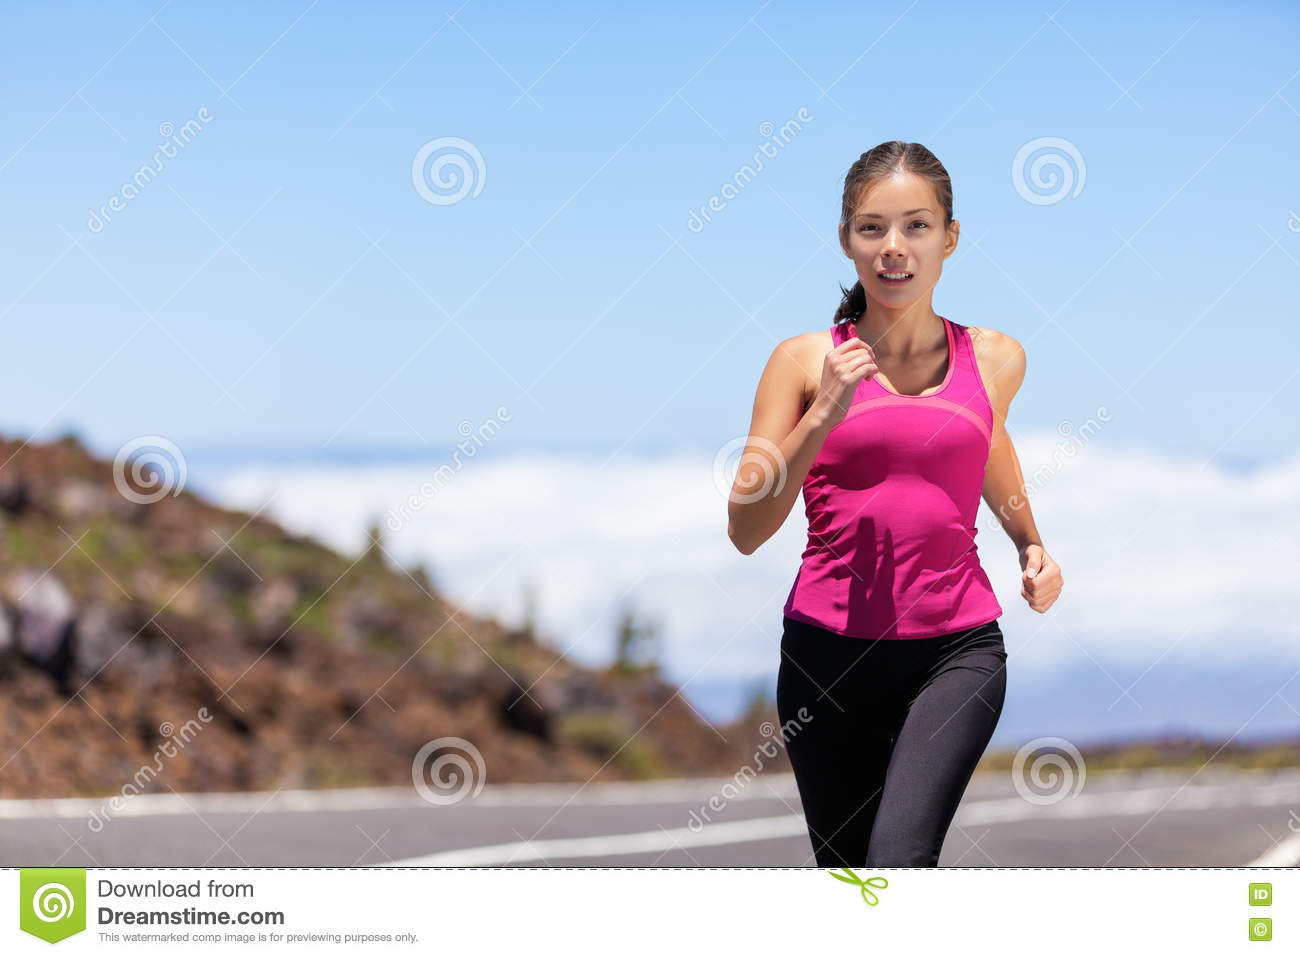 Fitness Running Woman Runner Living Healthy Lifestyle